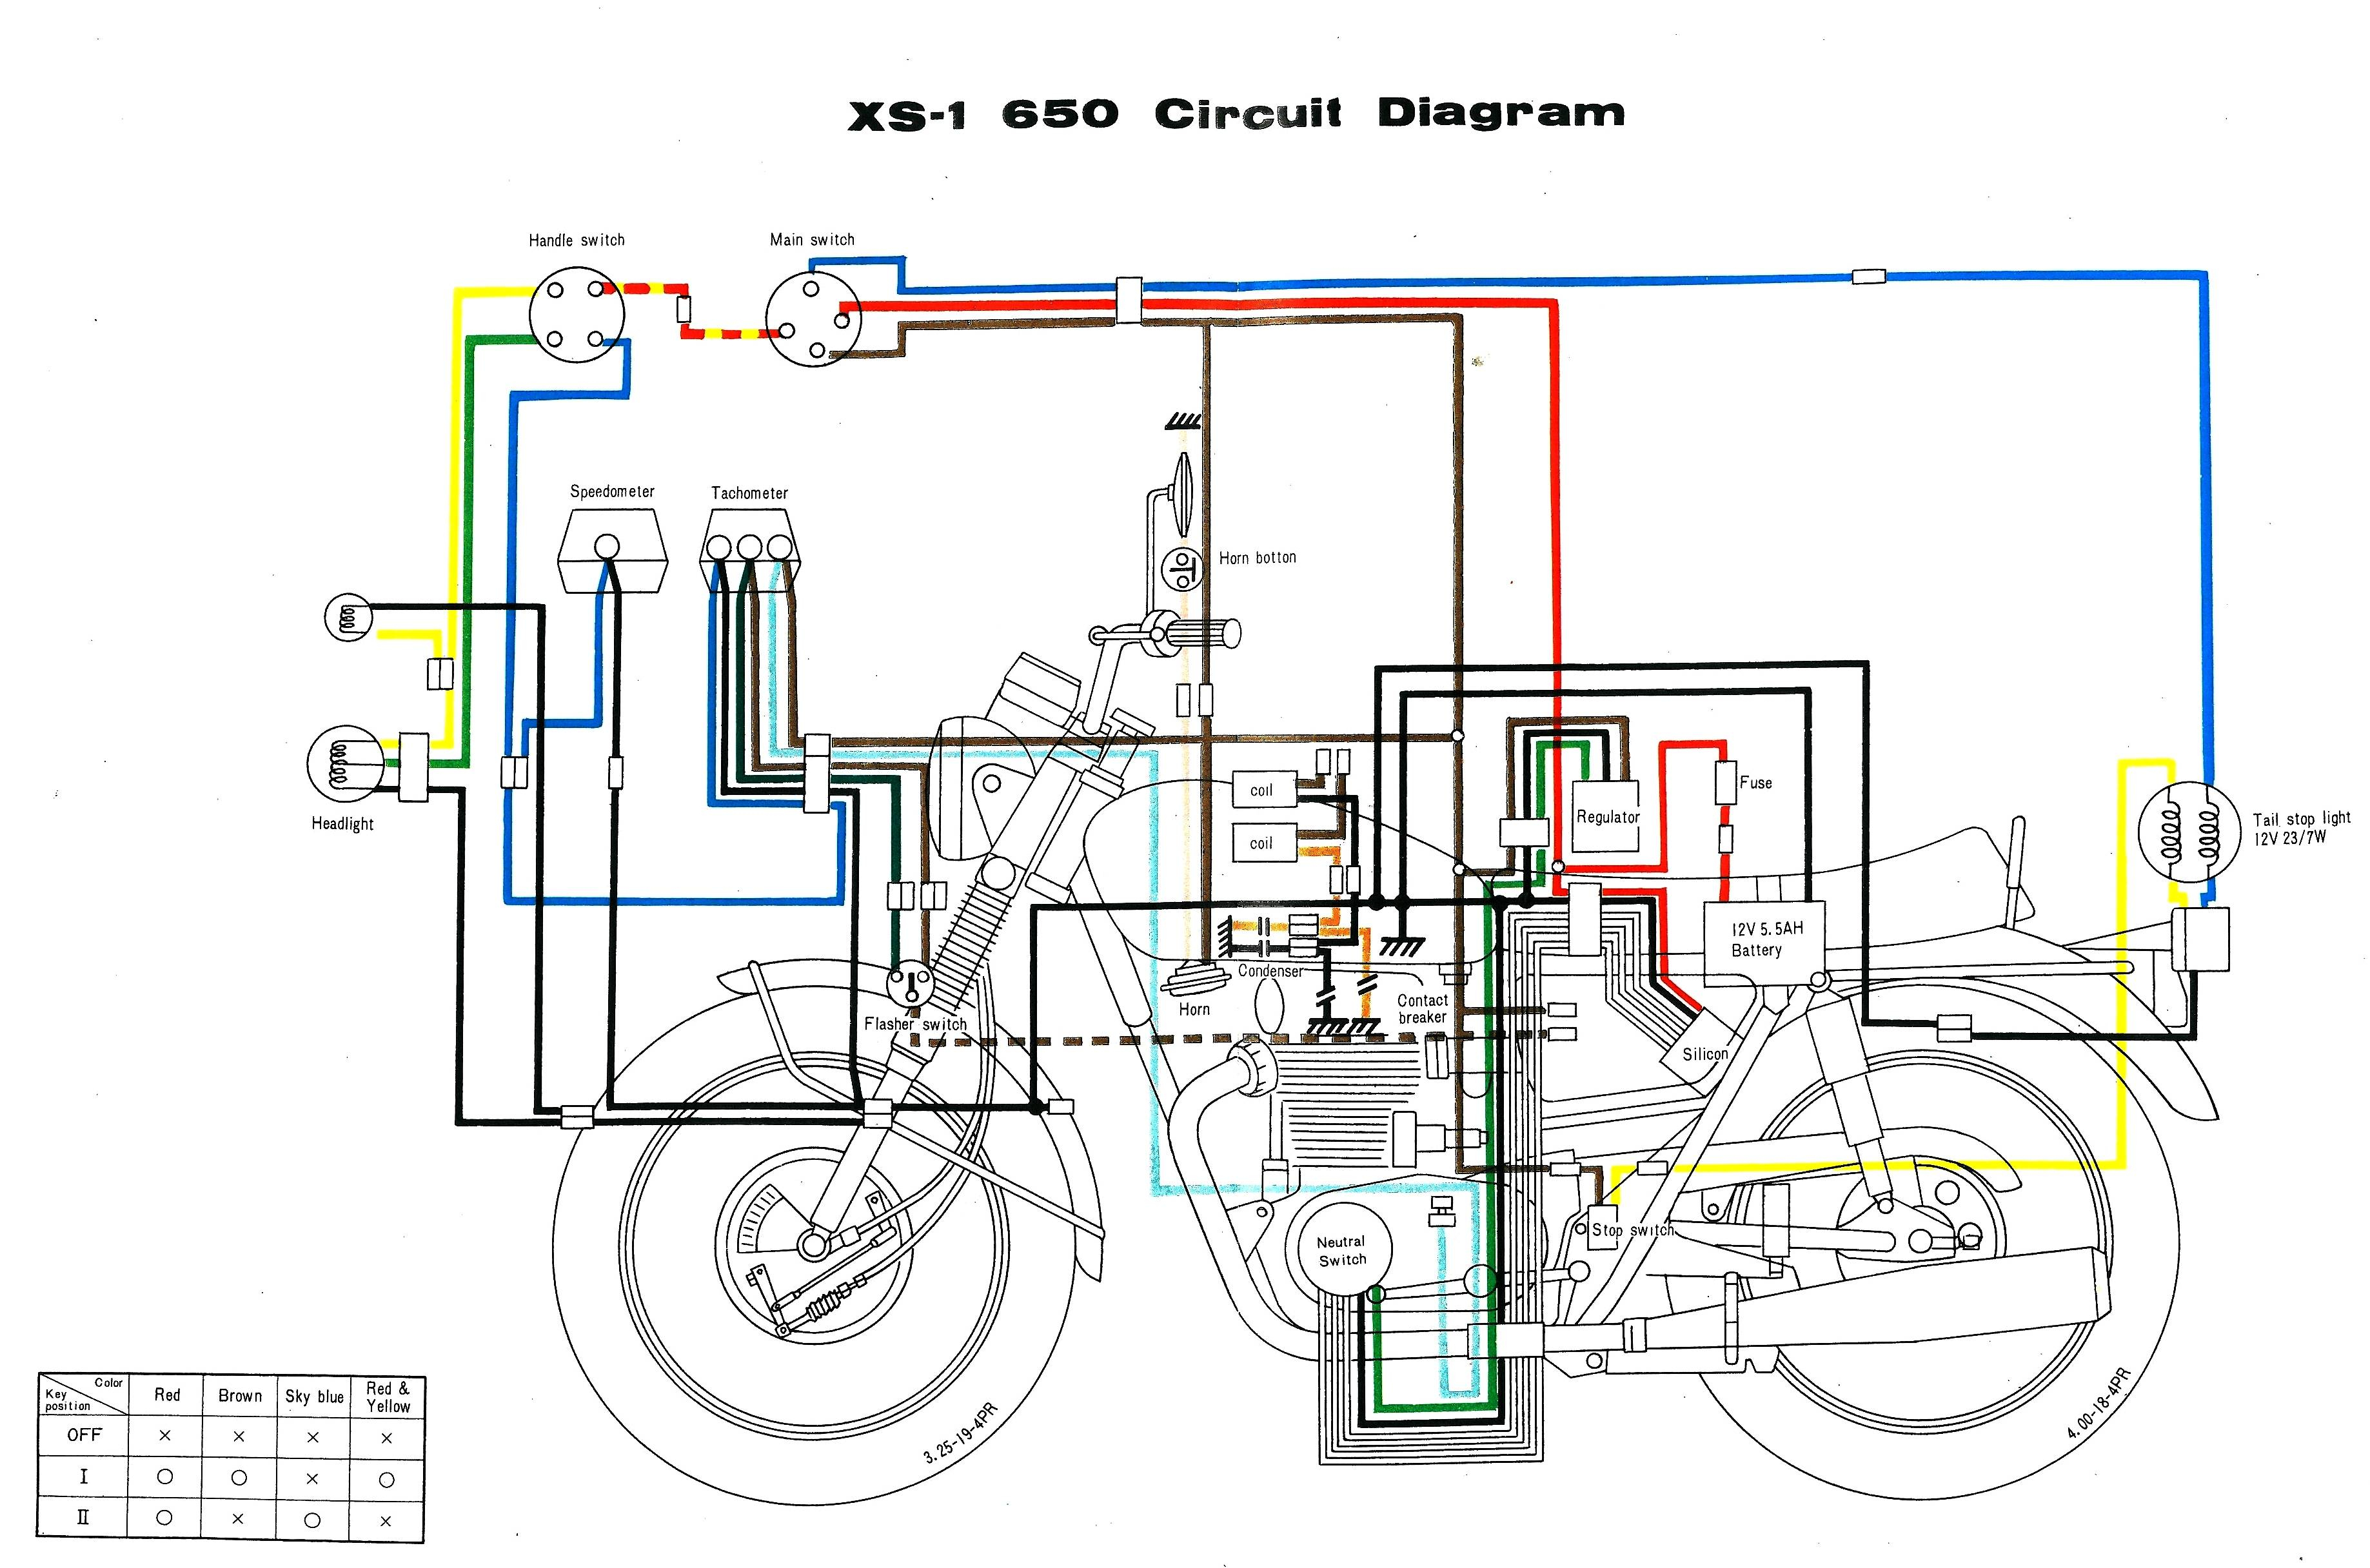 Wiring - What's A Schematic (Compared To Other Diagrams - Wiring Schematic Diagram